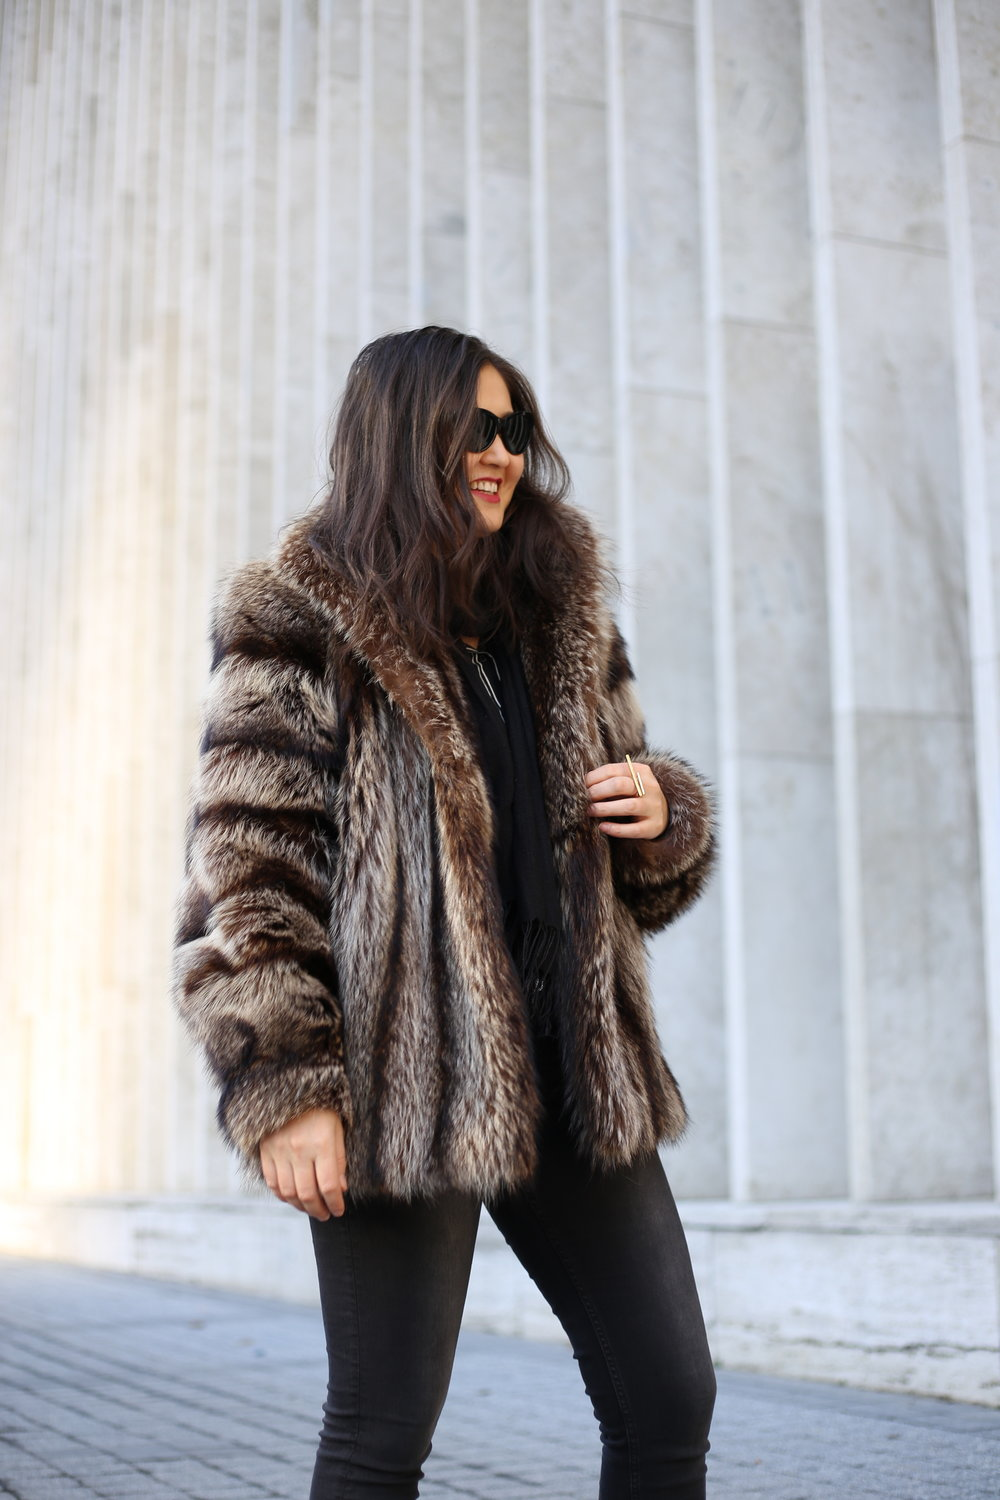 Coat: Vintage. Shirt: WhoWhatWear x Target. Jeans: H&M. Boots: ASOS. Bag: Jonathan Adler. Sunnies: Cole Haan.